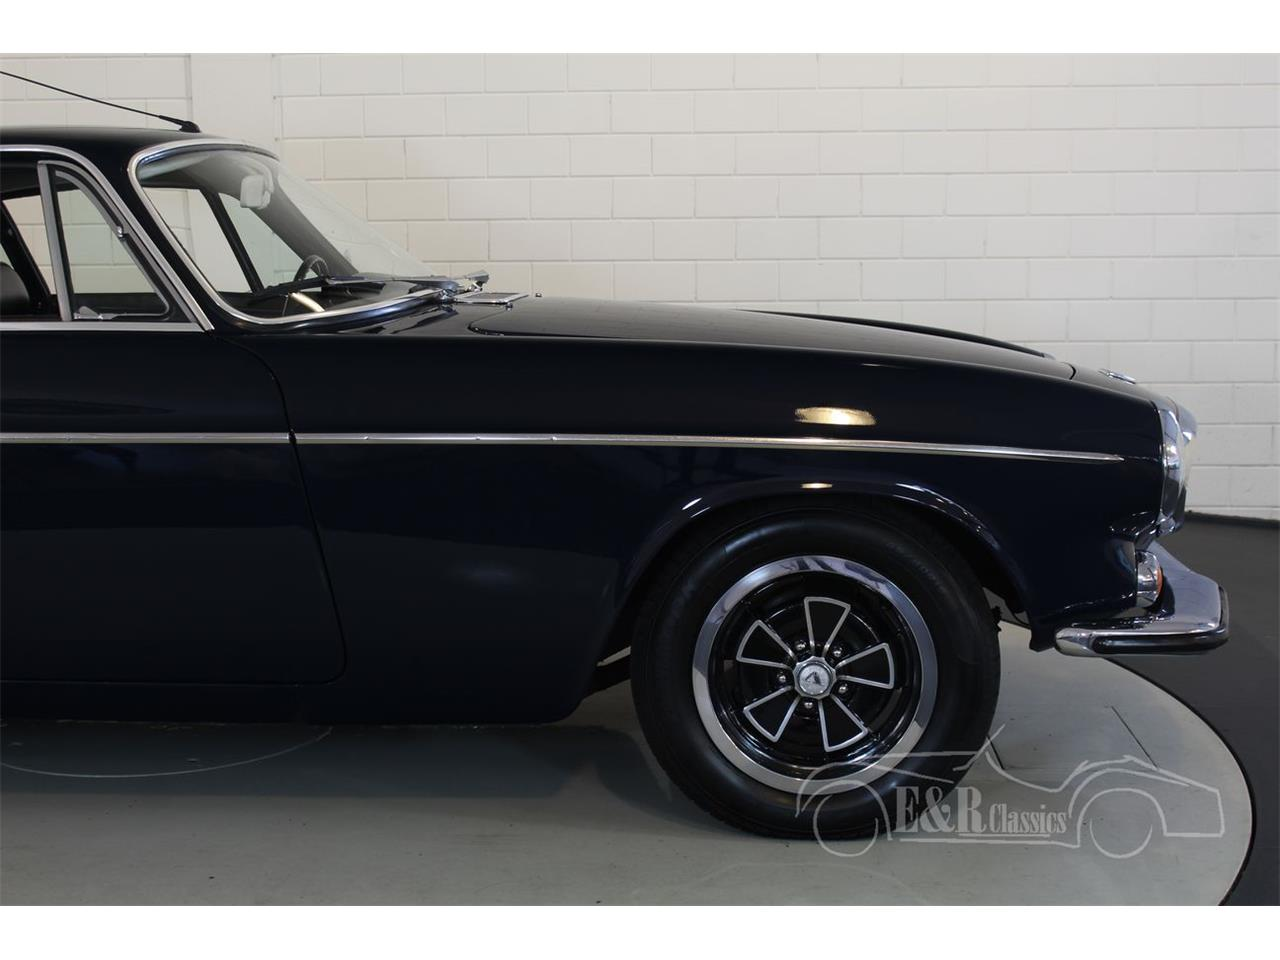 Large Picture of Classic '71 Volvo P1800E located in noord brabant - $39,400.00 - Q95J